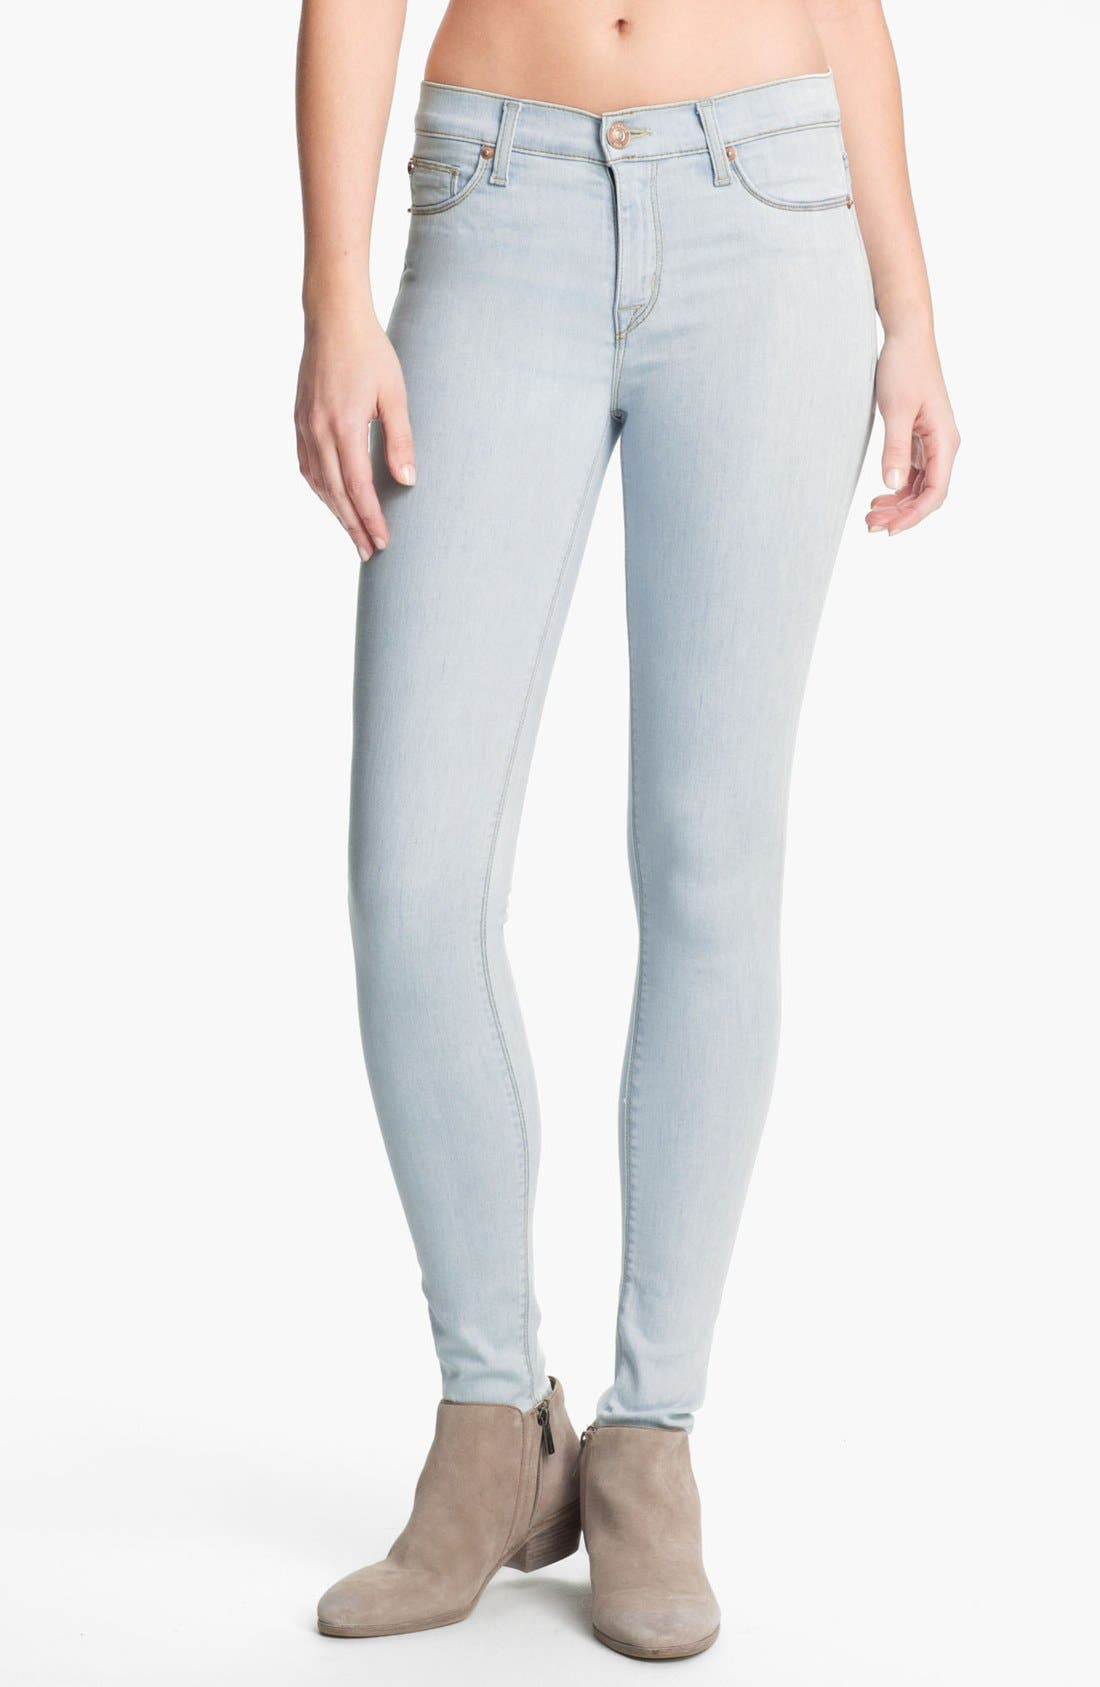 Alternate Image 1 Selected - Hudson Jeans 'Nico' Super Skinny Jeans (Dahlia)